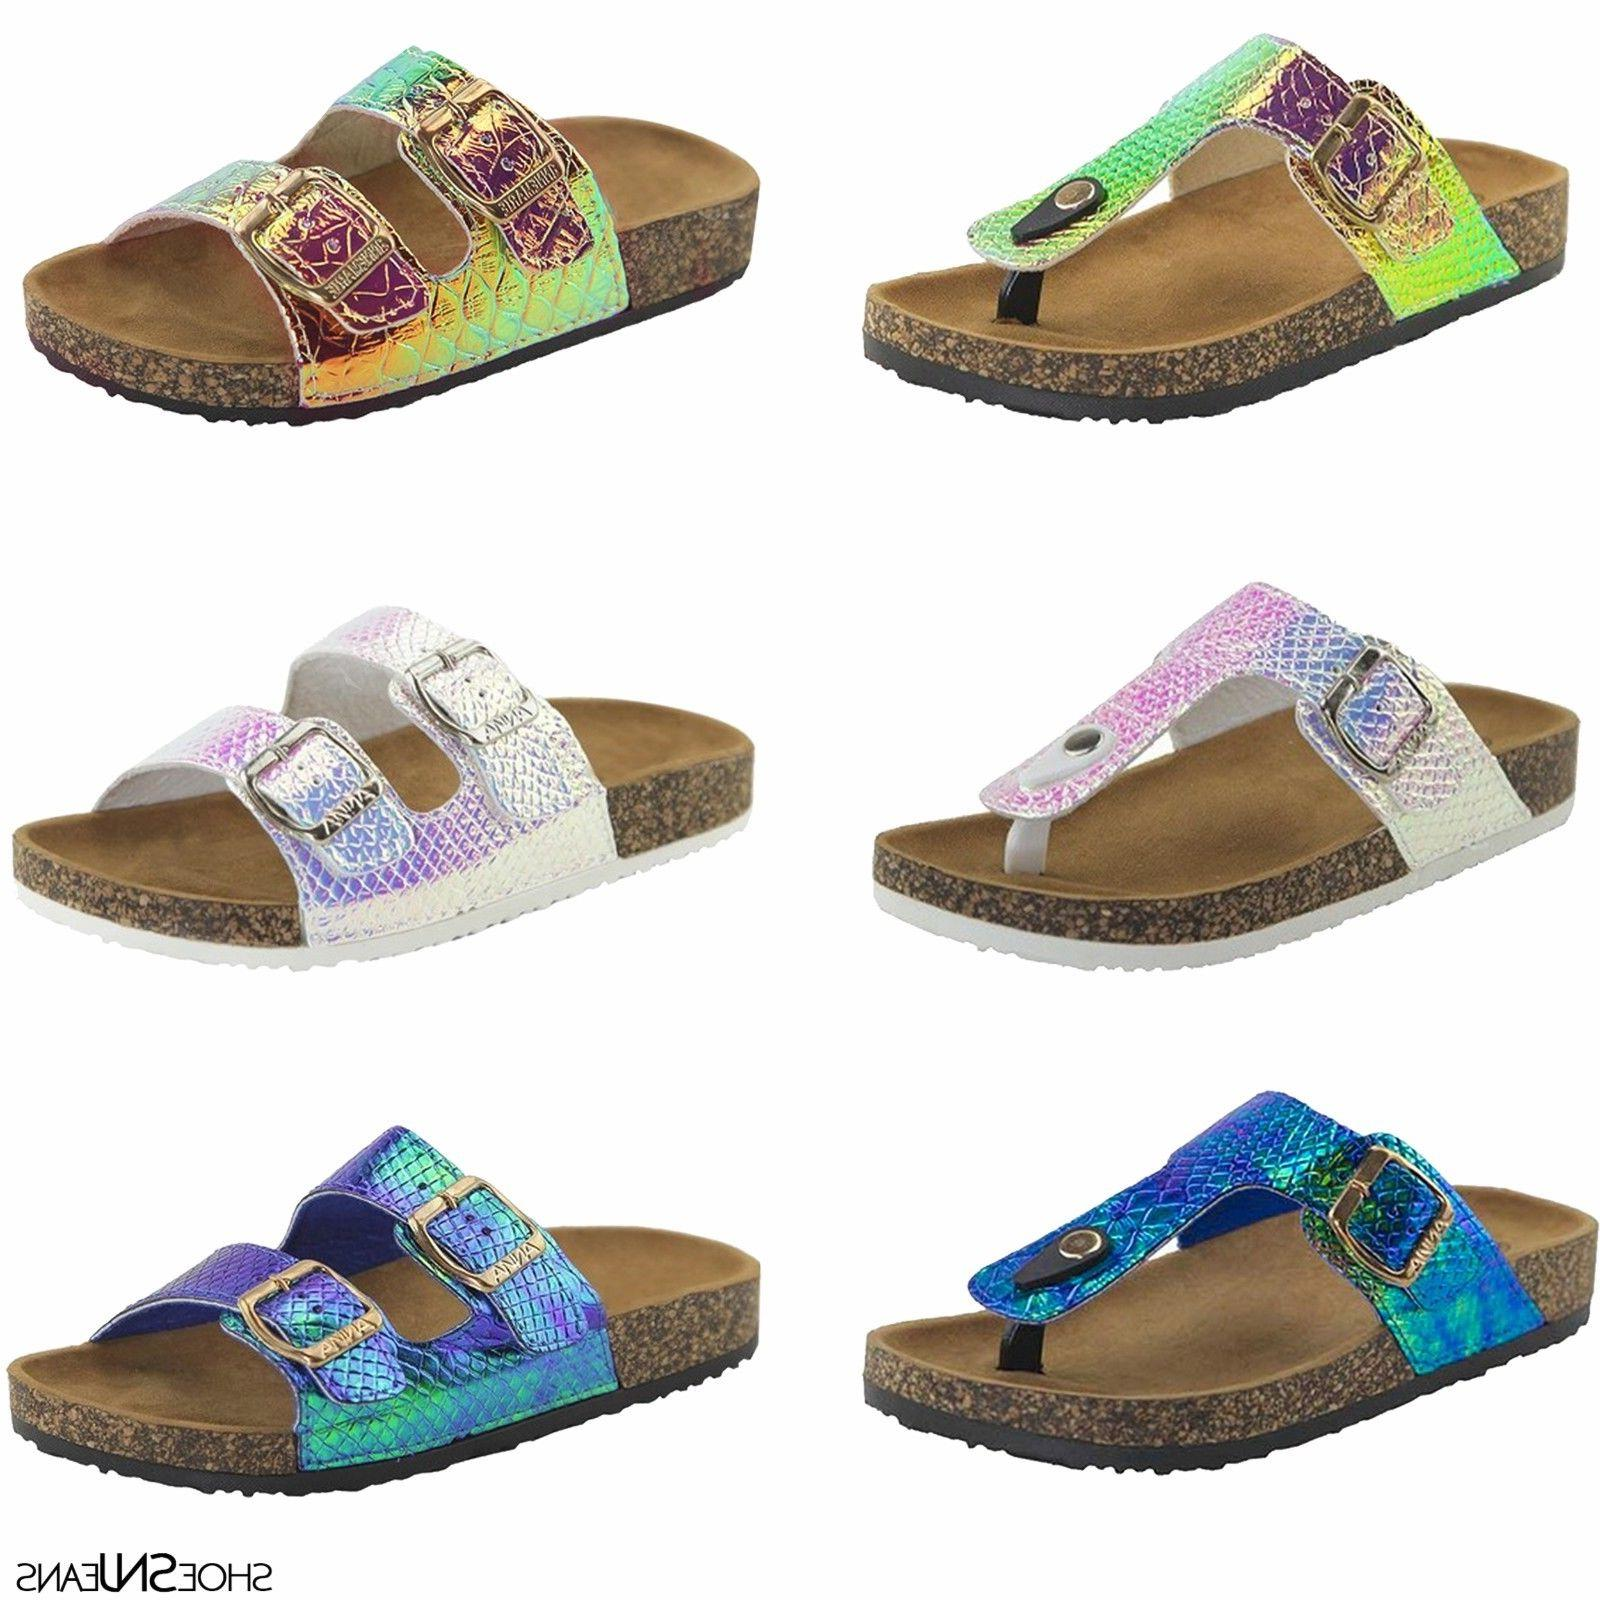 new women and kids glitter sandals shoes